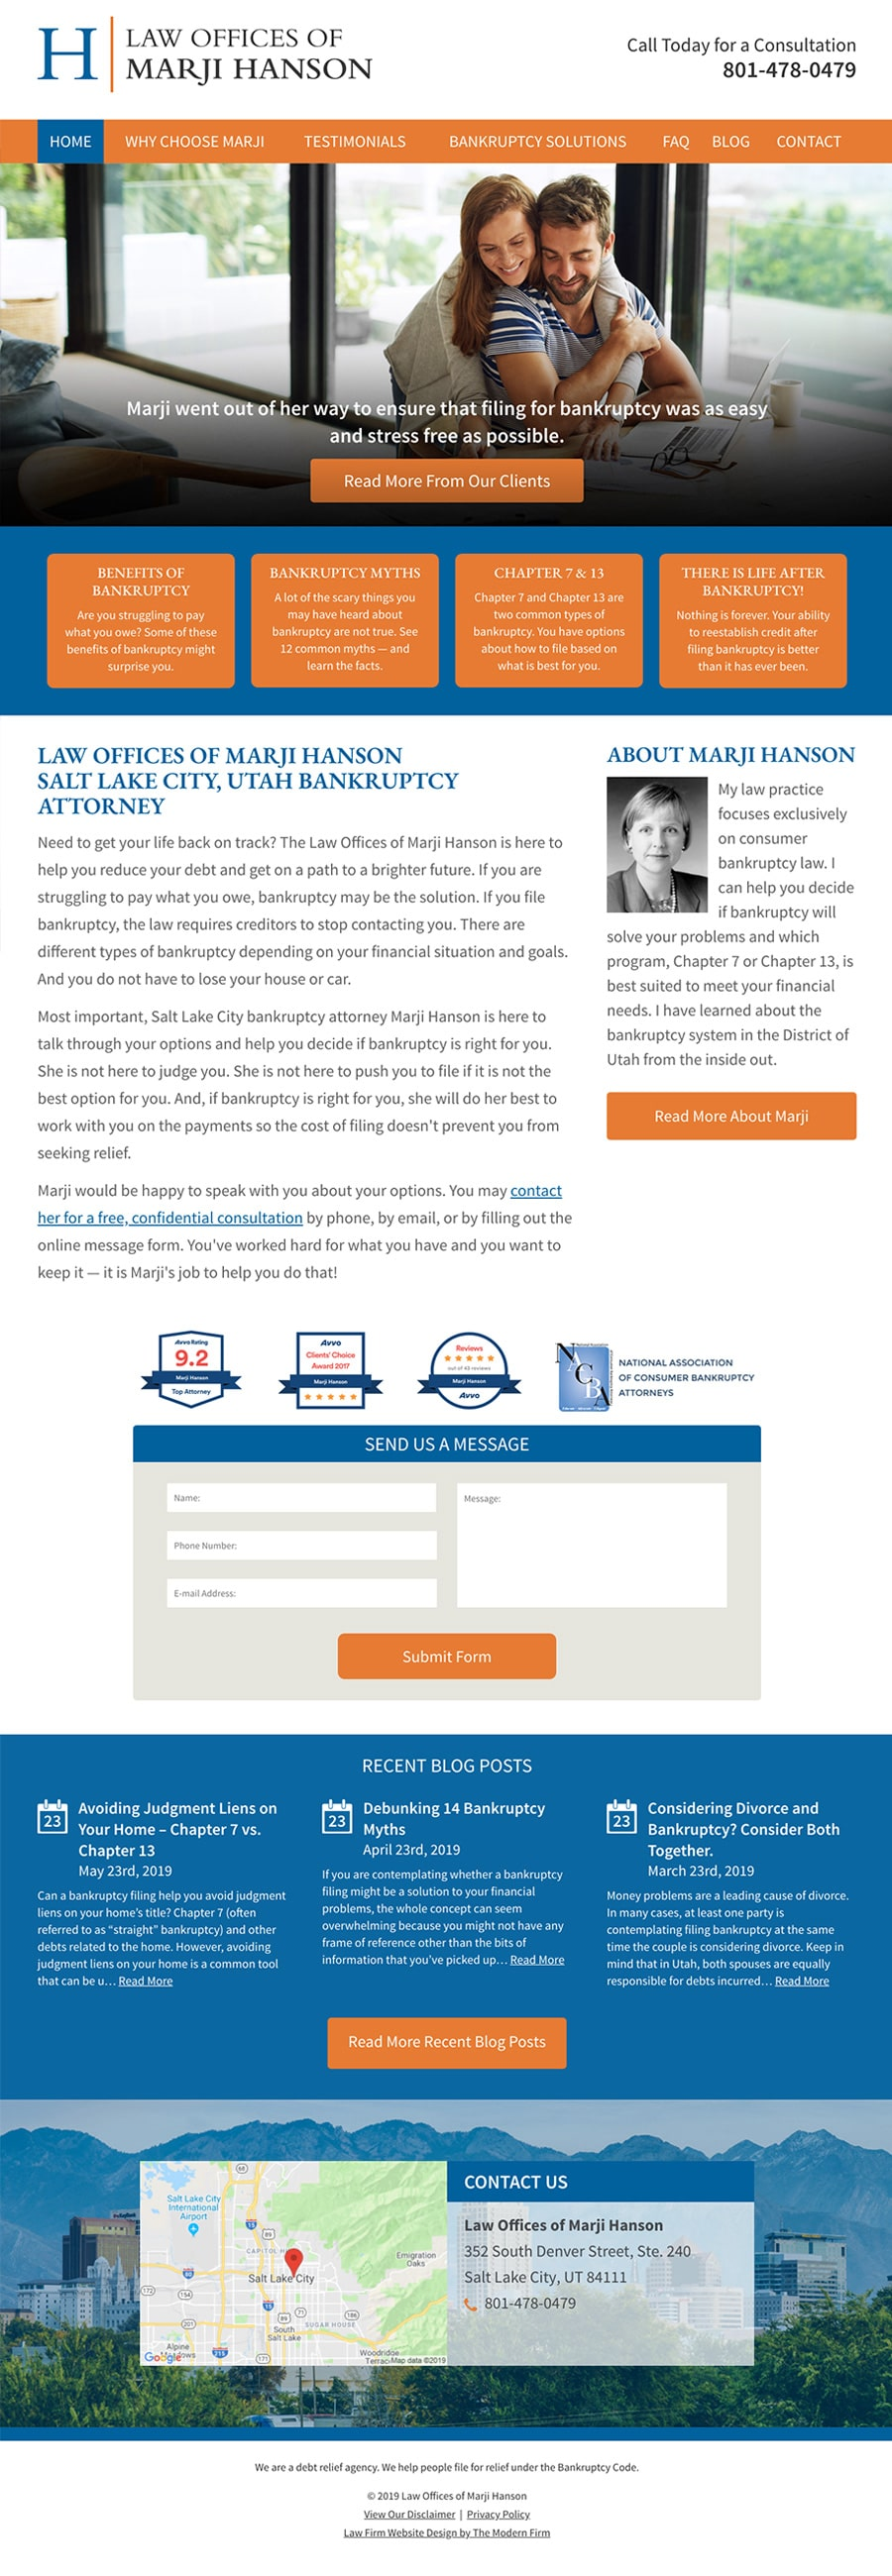 Law Firm Website Design for Law Offices of Marji Hanson